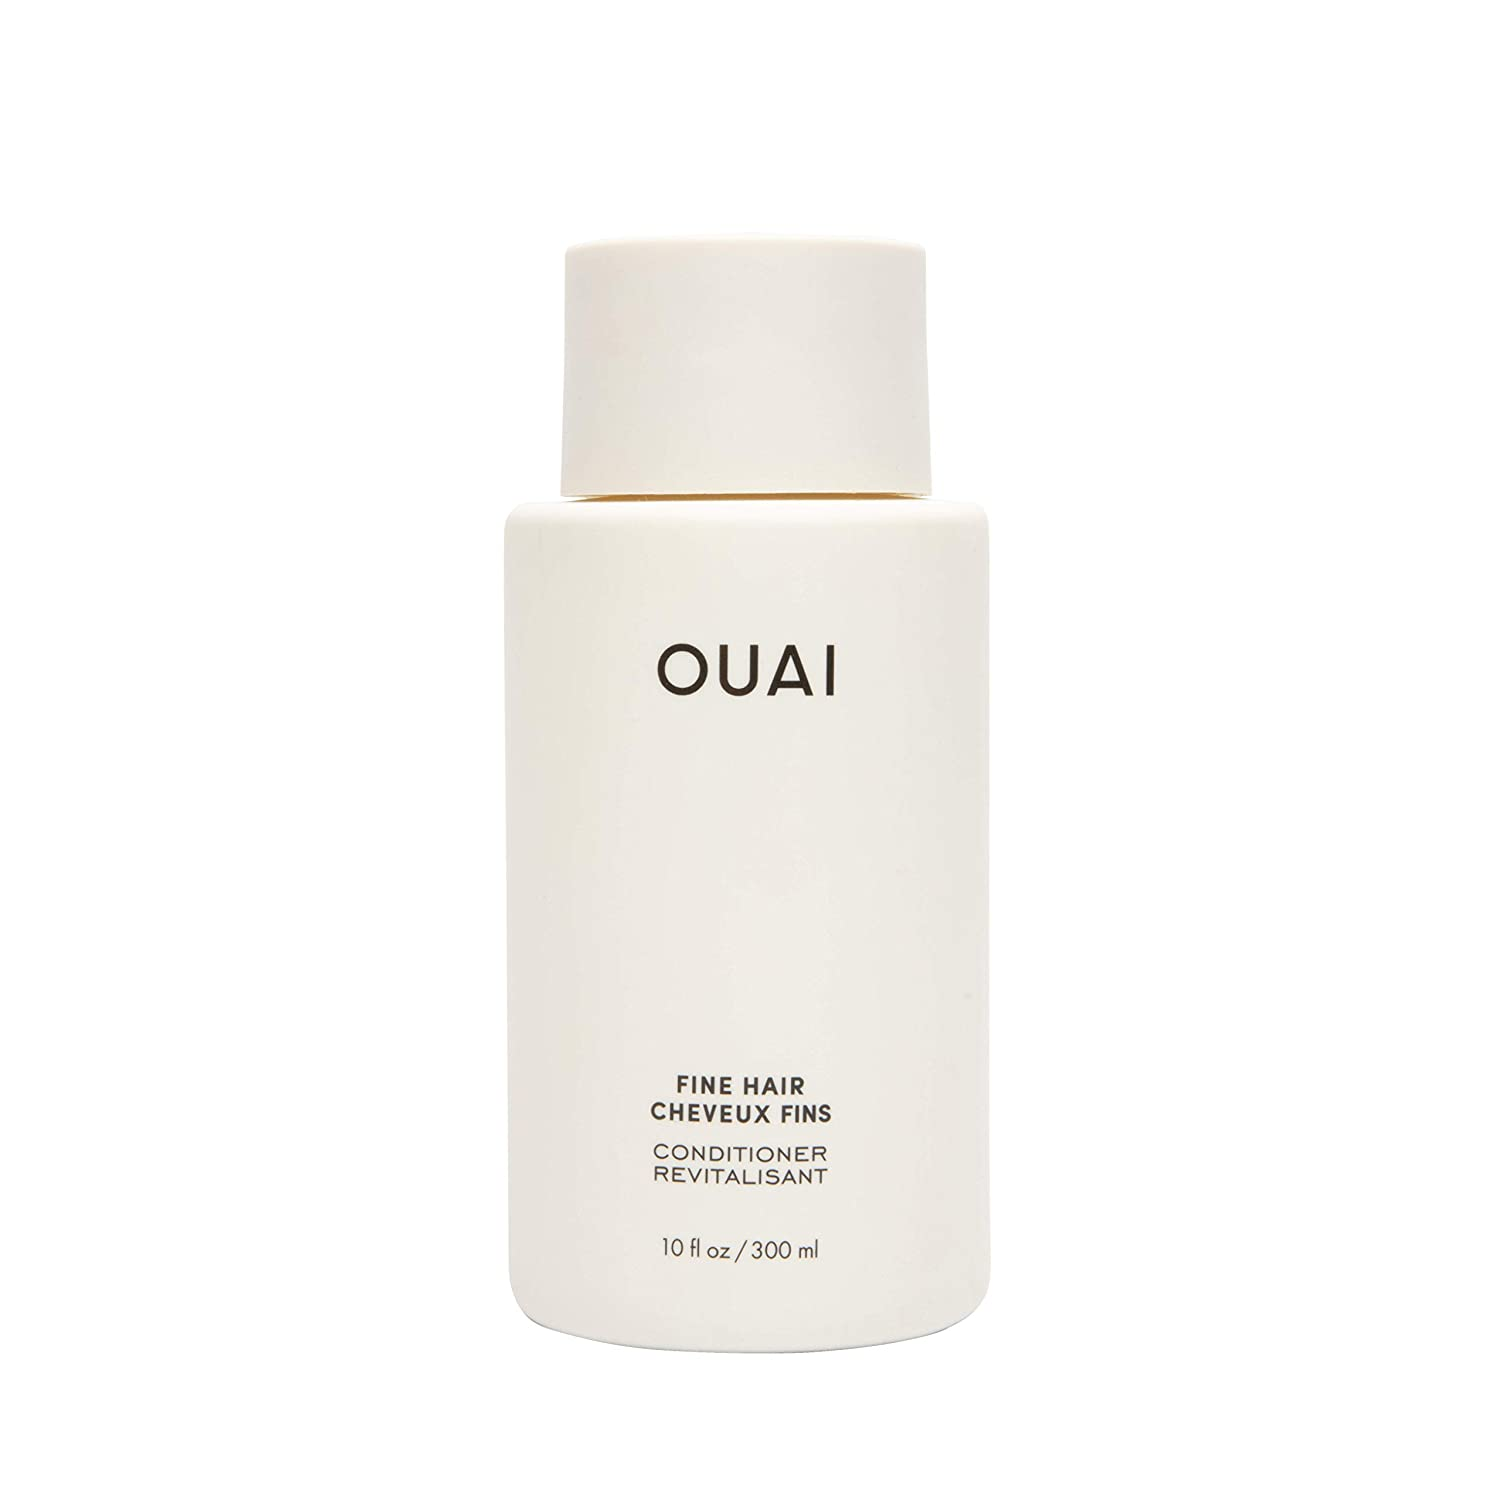 OUAI Bargain sale Super-cheap Fine Conditioner. This Gives H Lightweight Conditioner